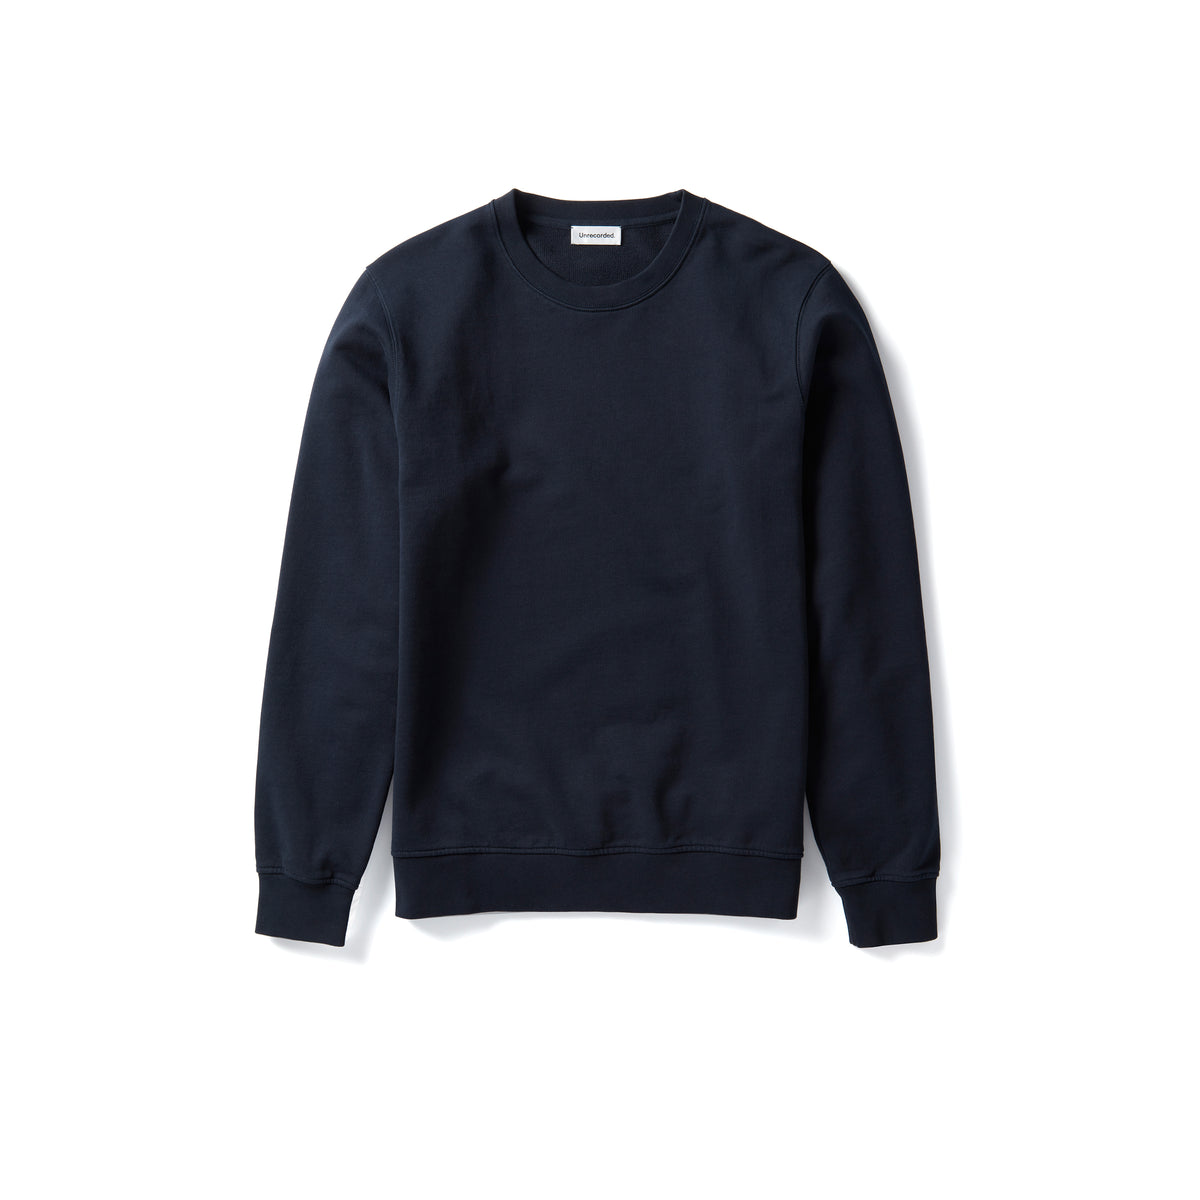 Sweater in Navy made from organic cotton - Alternate